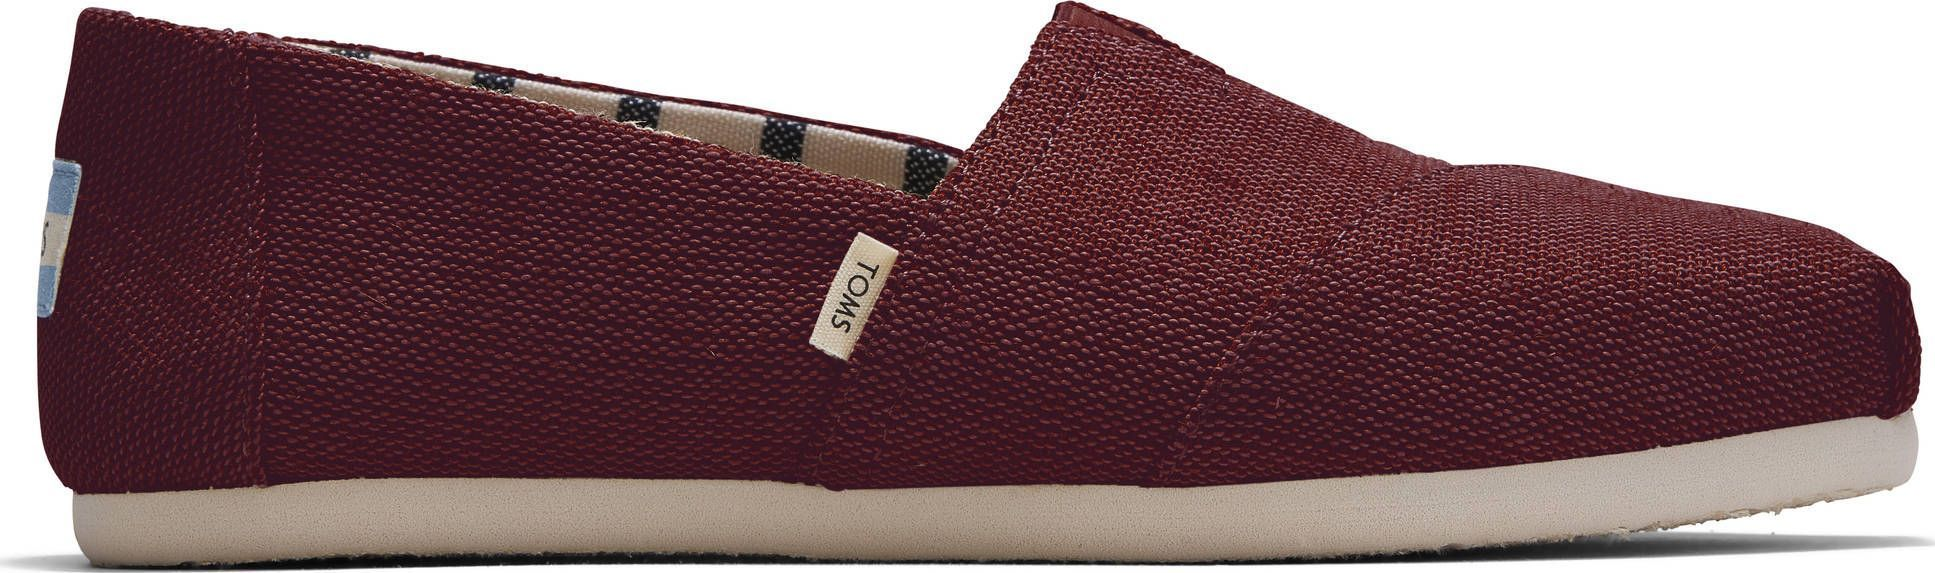 TOMS Heritage Canvas Women's Alpargata Black Cherry 10015766 39